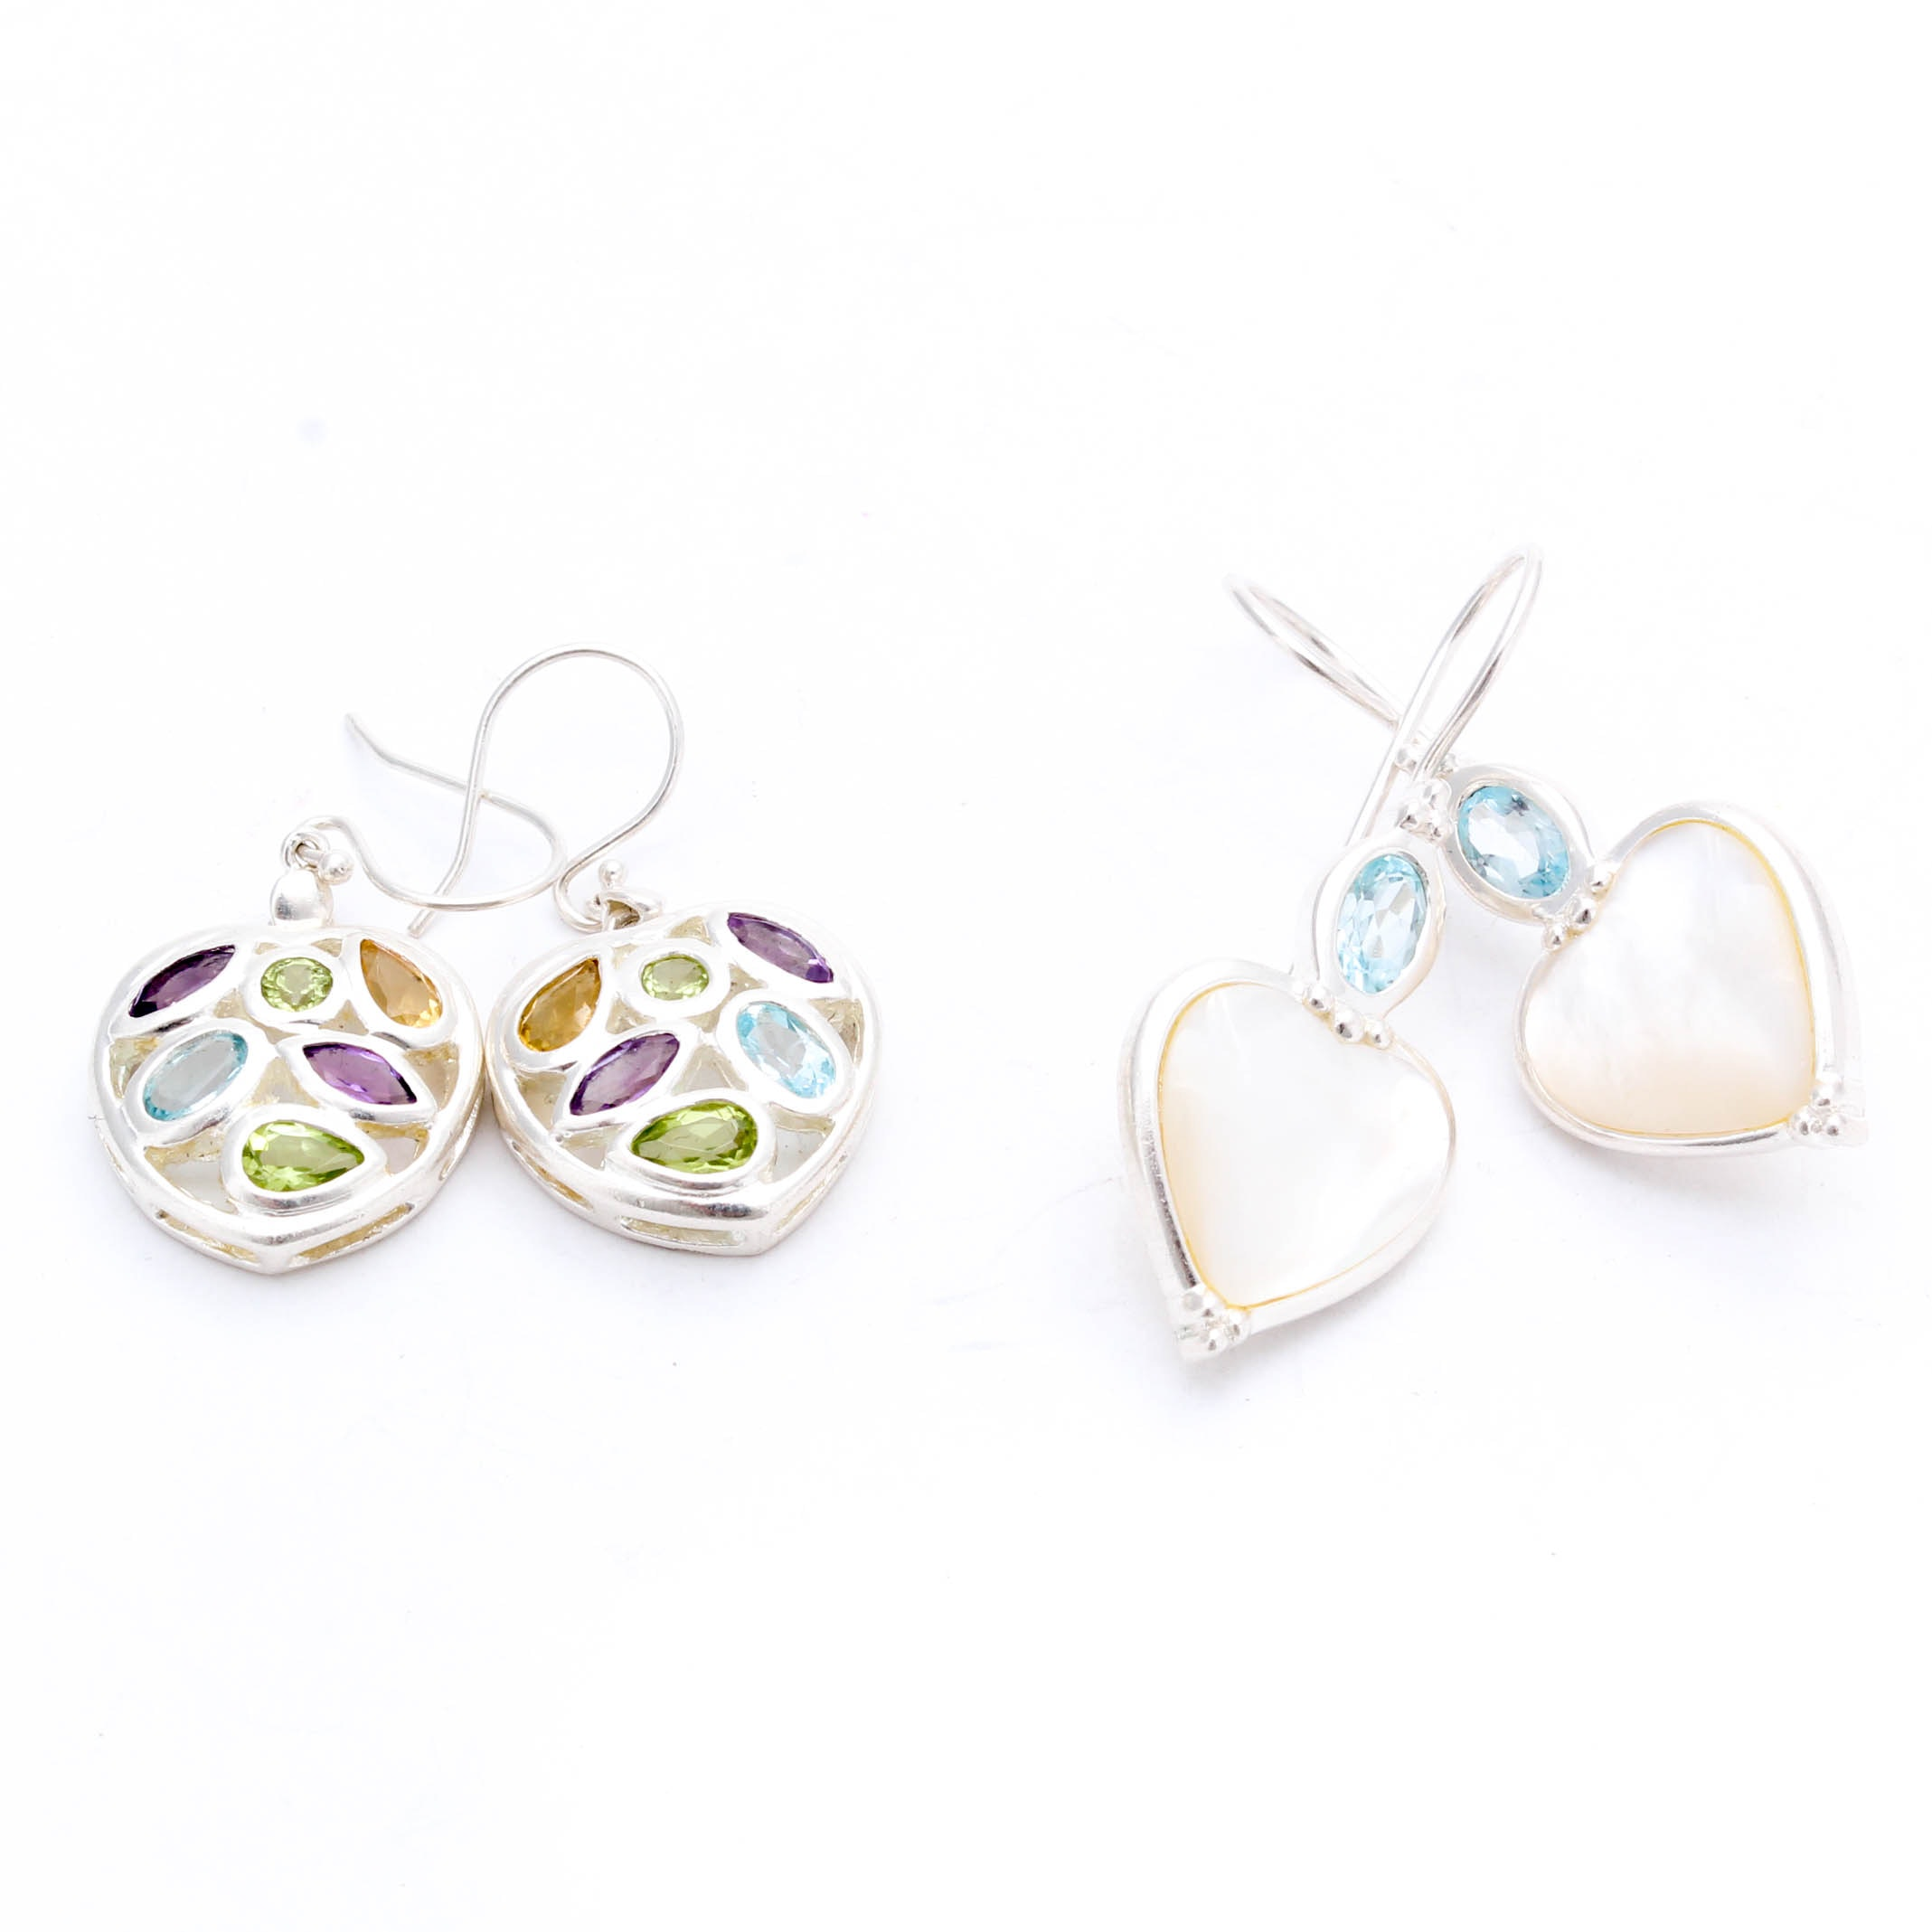 Sterling Silver Gemstone Earrings with Sterling and Mother of Pearl Earrings